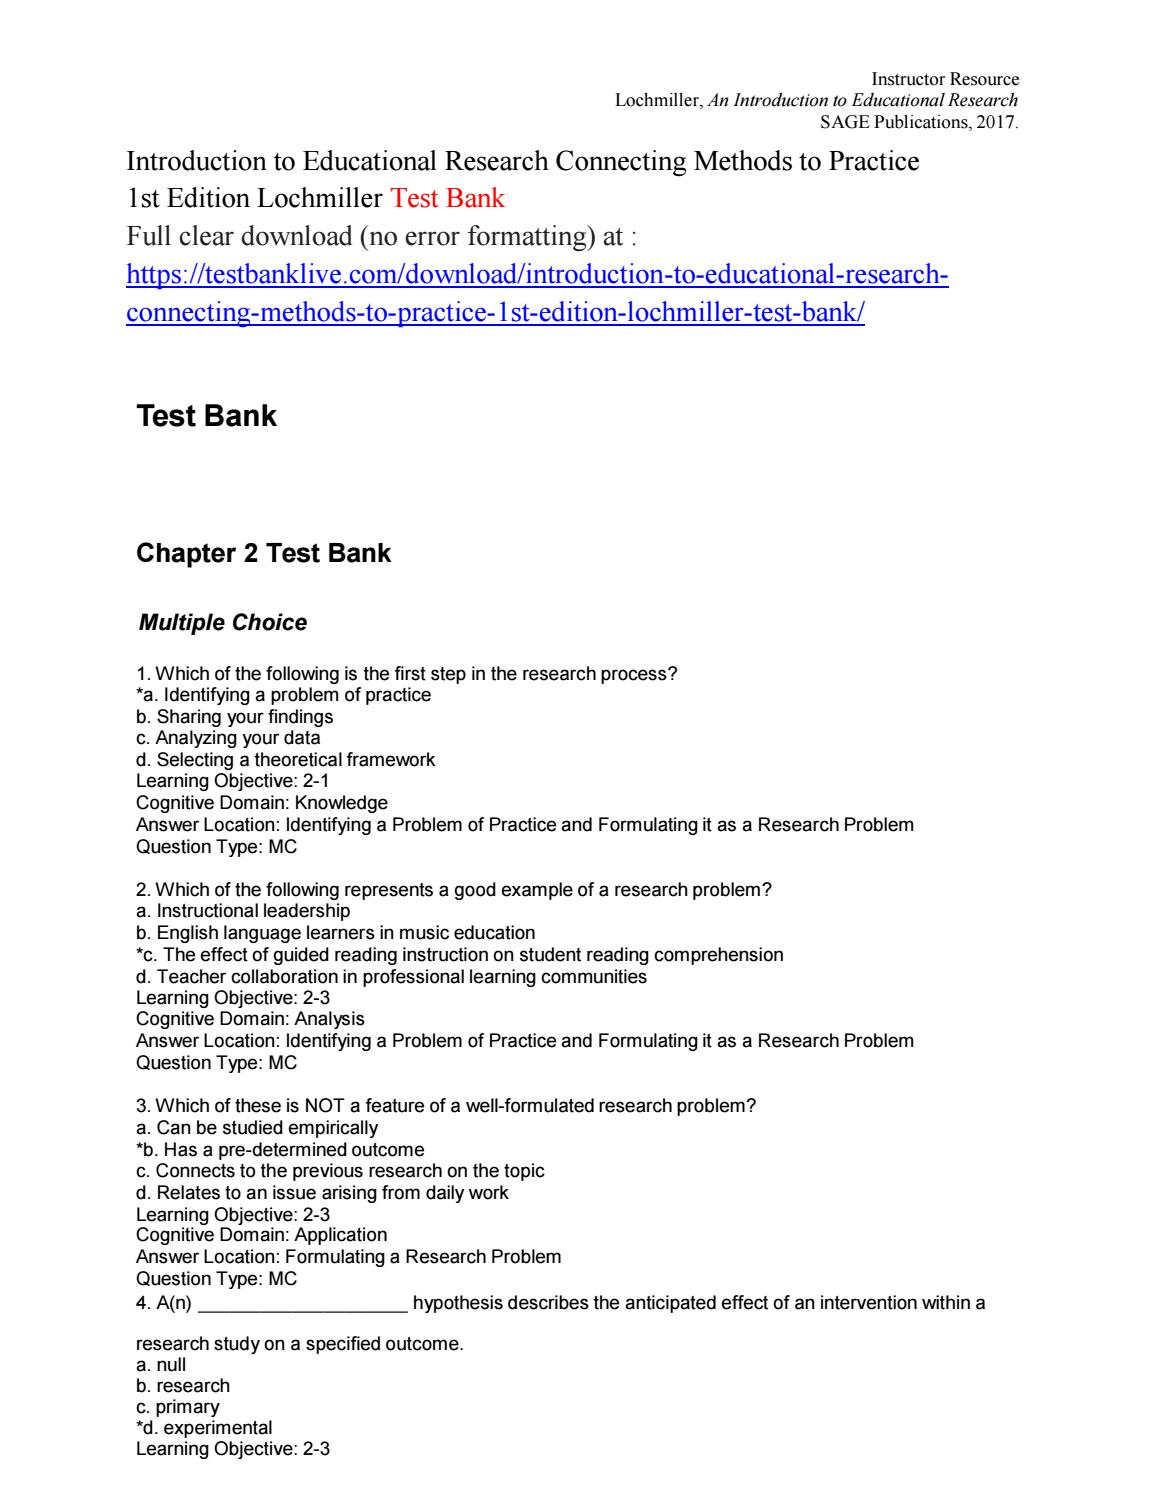 003 Page 1 Research Paper Education Beautiful Introduction Full